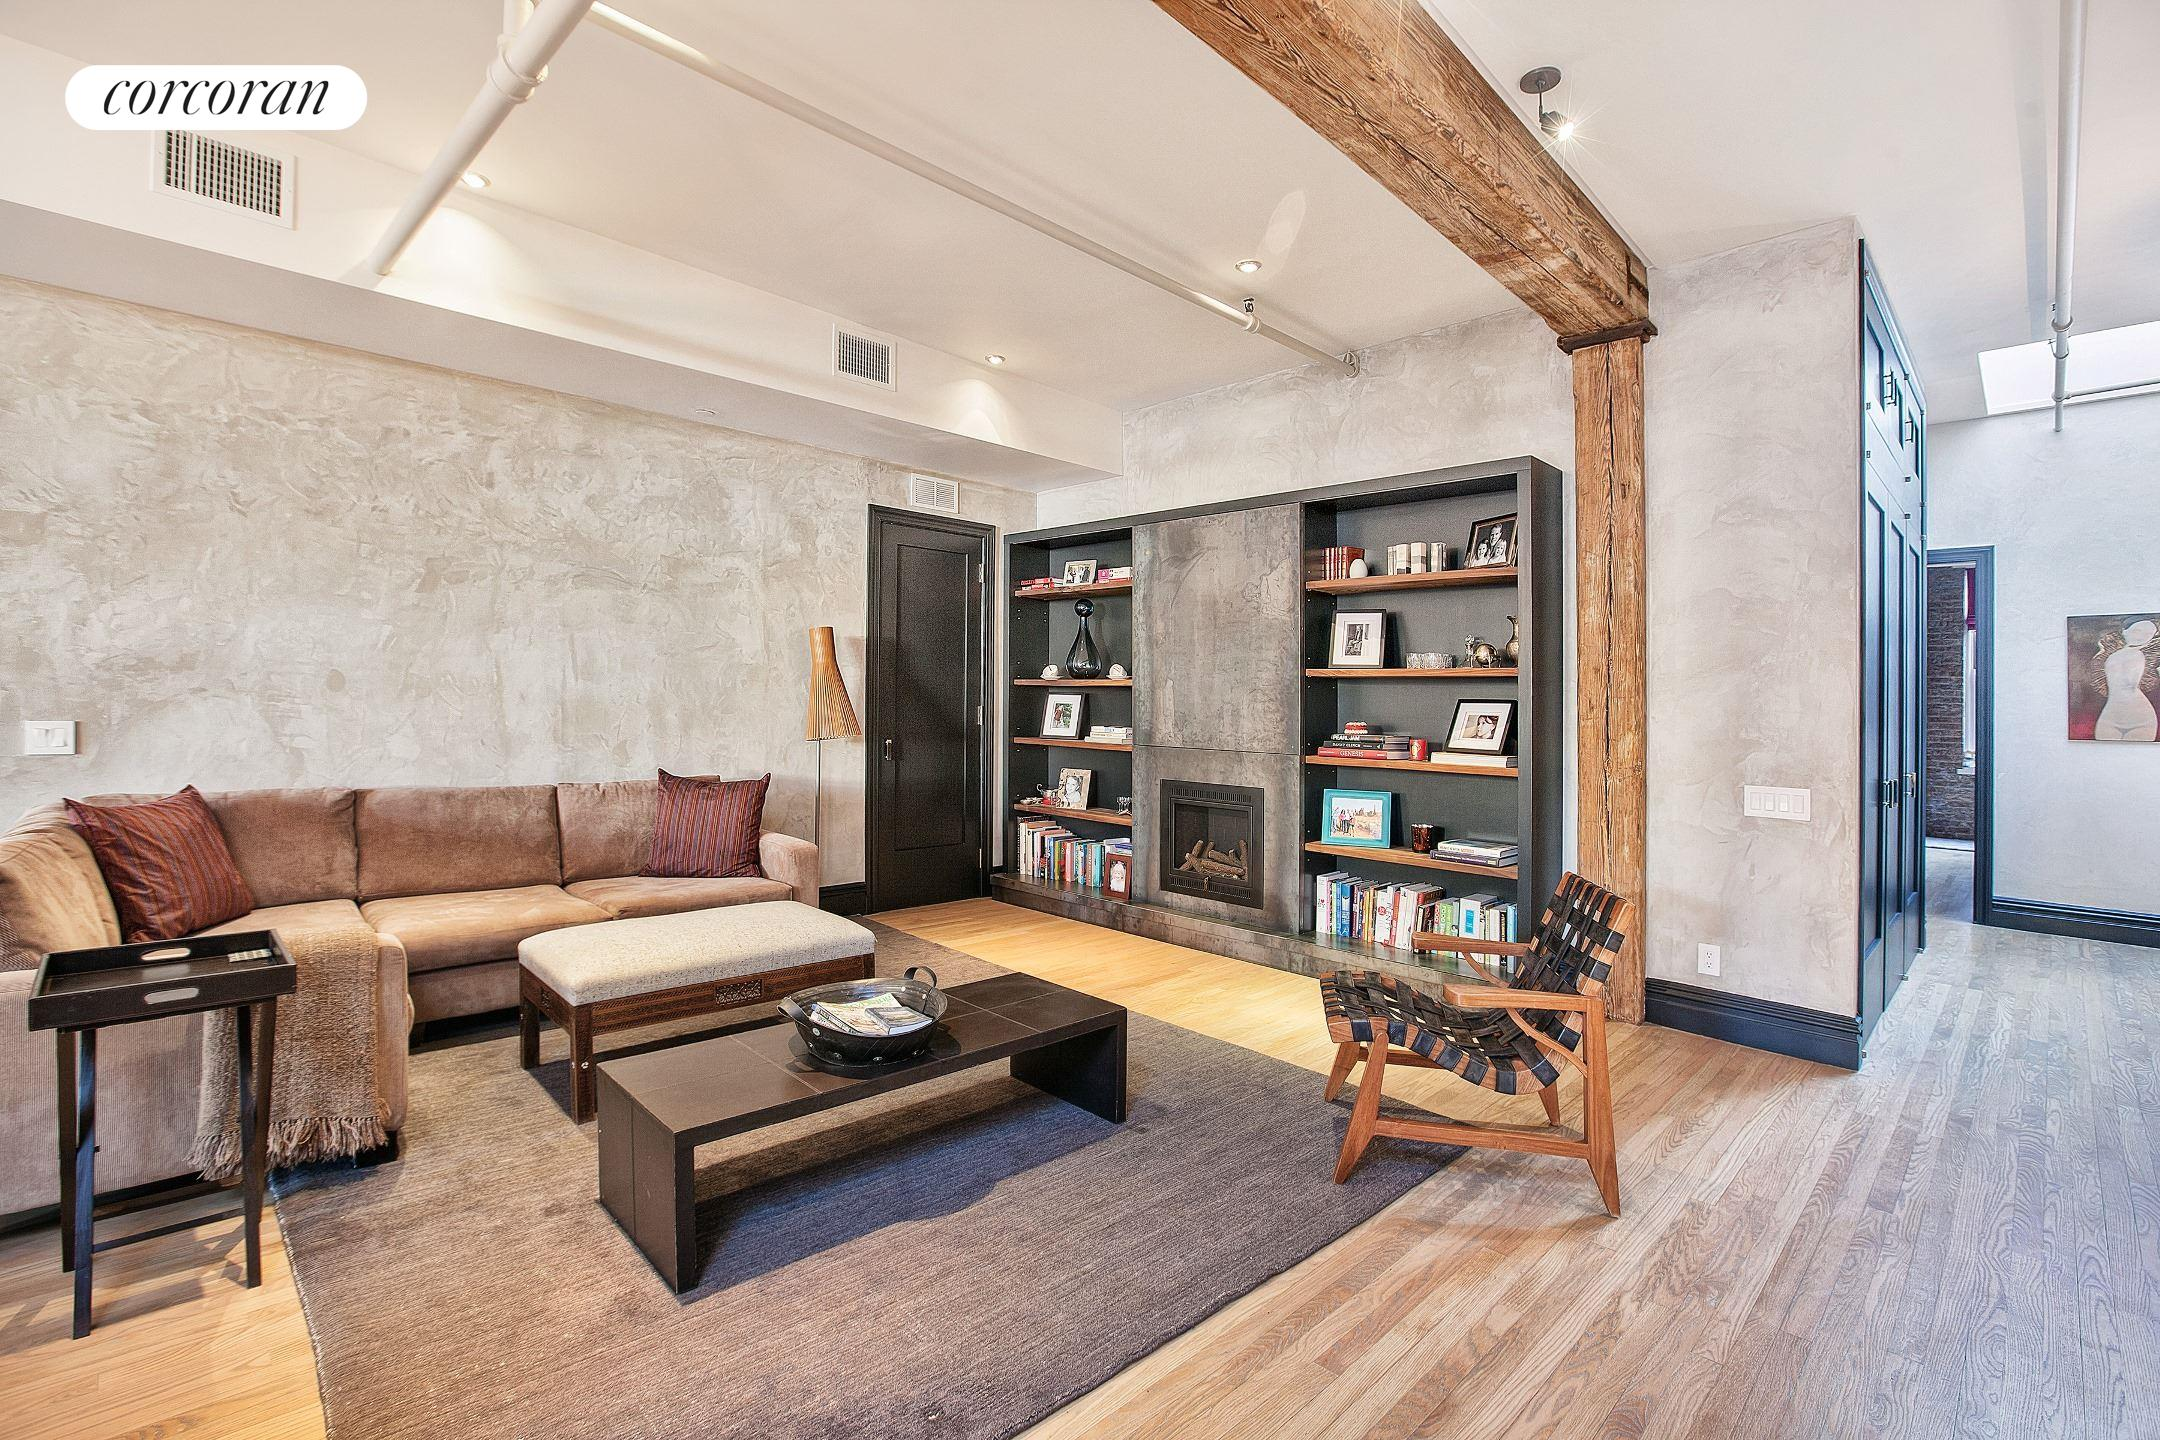 Corcoran 38 north moore apt 6e tribeca real estate for Tribeca property for sale